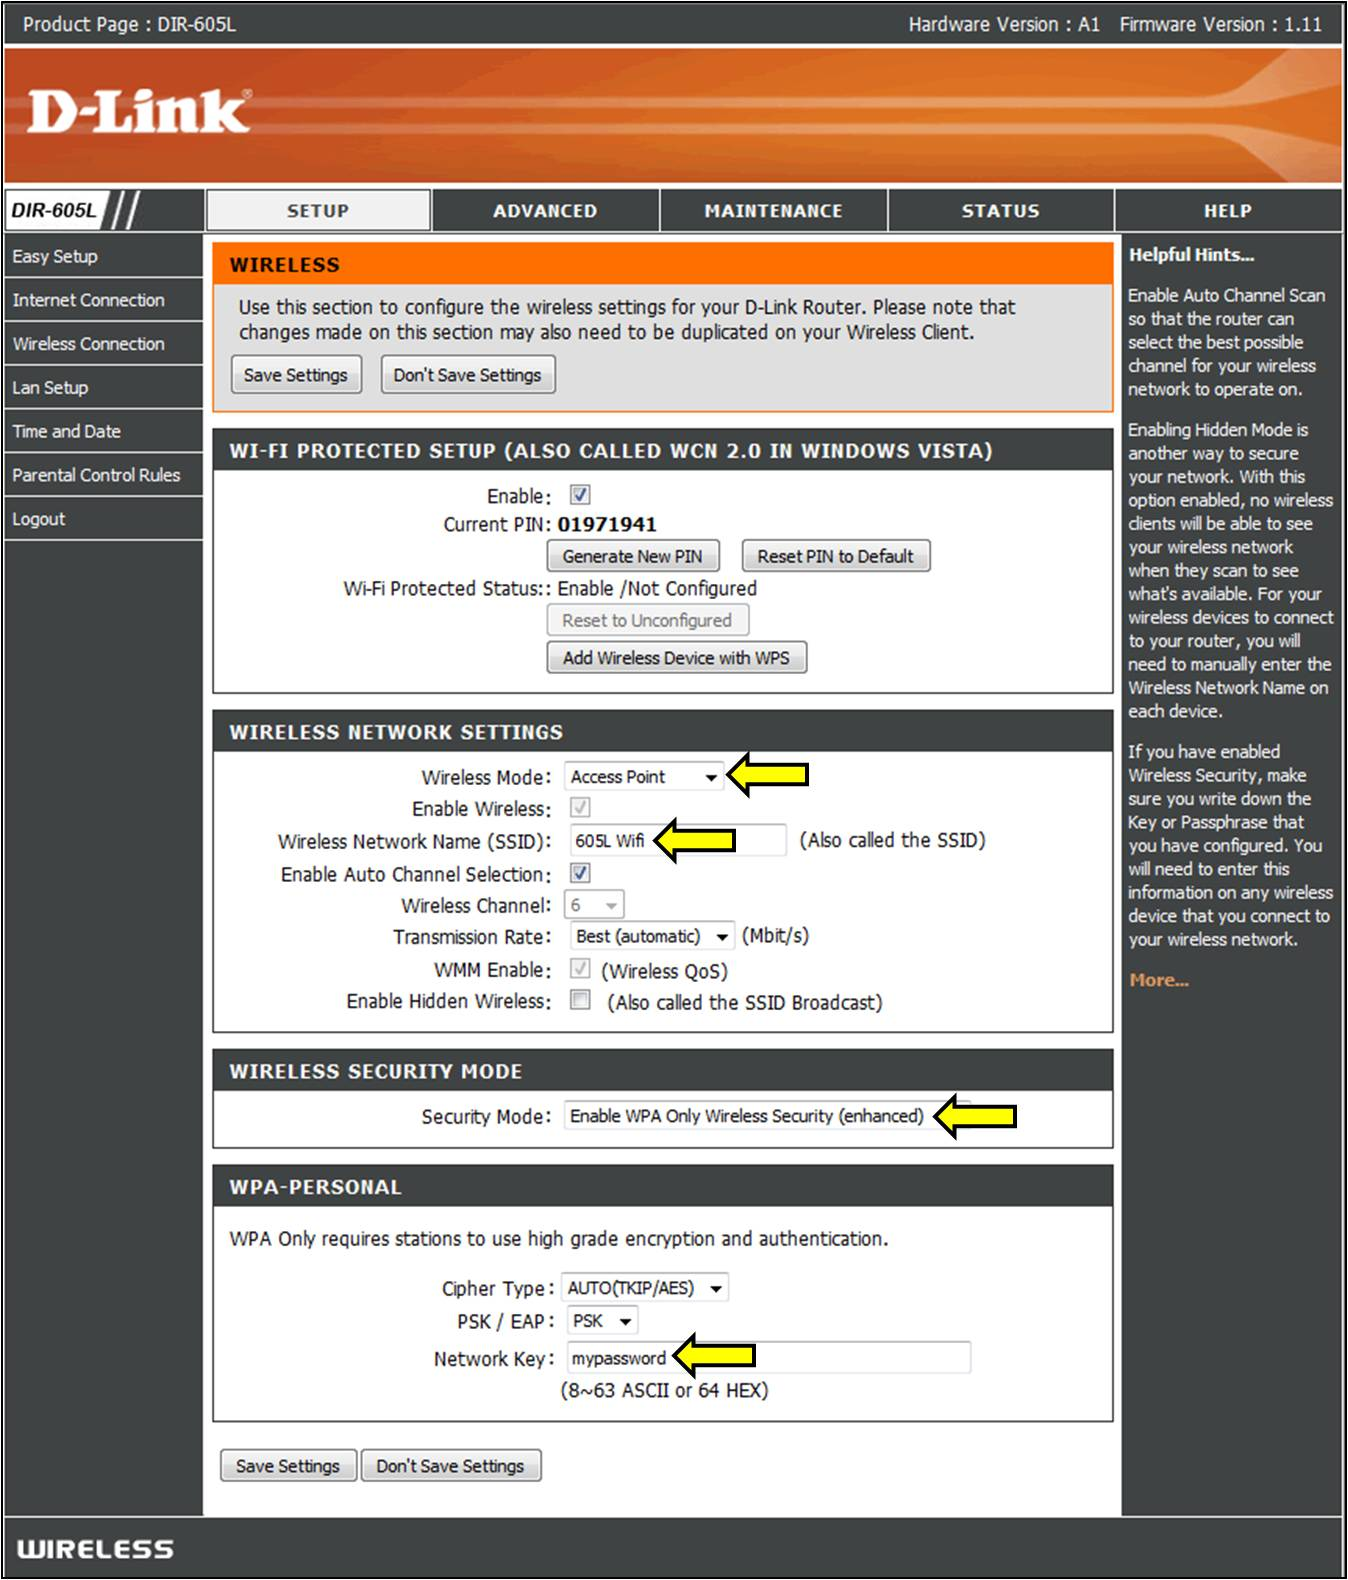 http://sim.dlink.ca/images/faqs/How_do_I_configure_the_Wireless_modes_on_my_DIR-605L/ap_configured.jpg